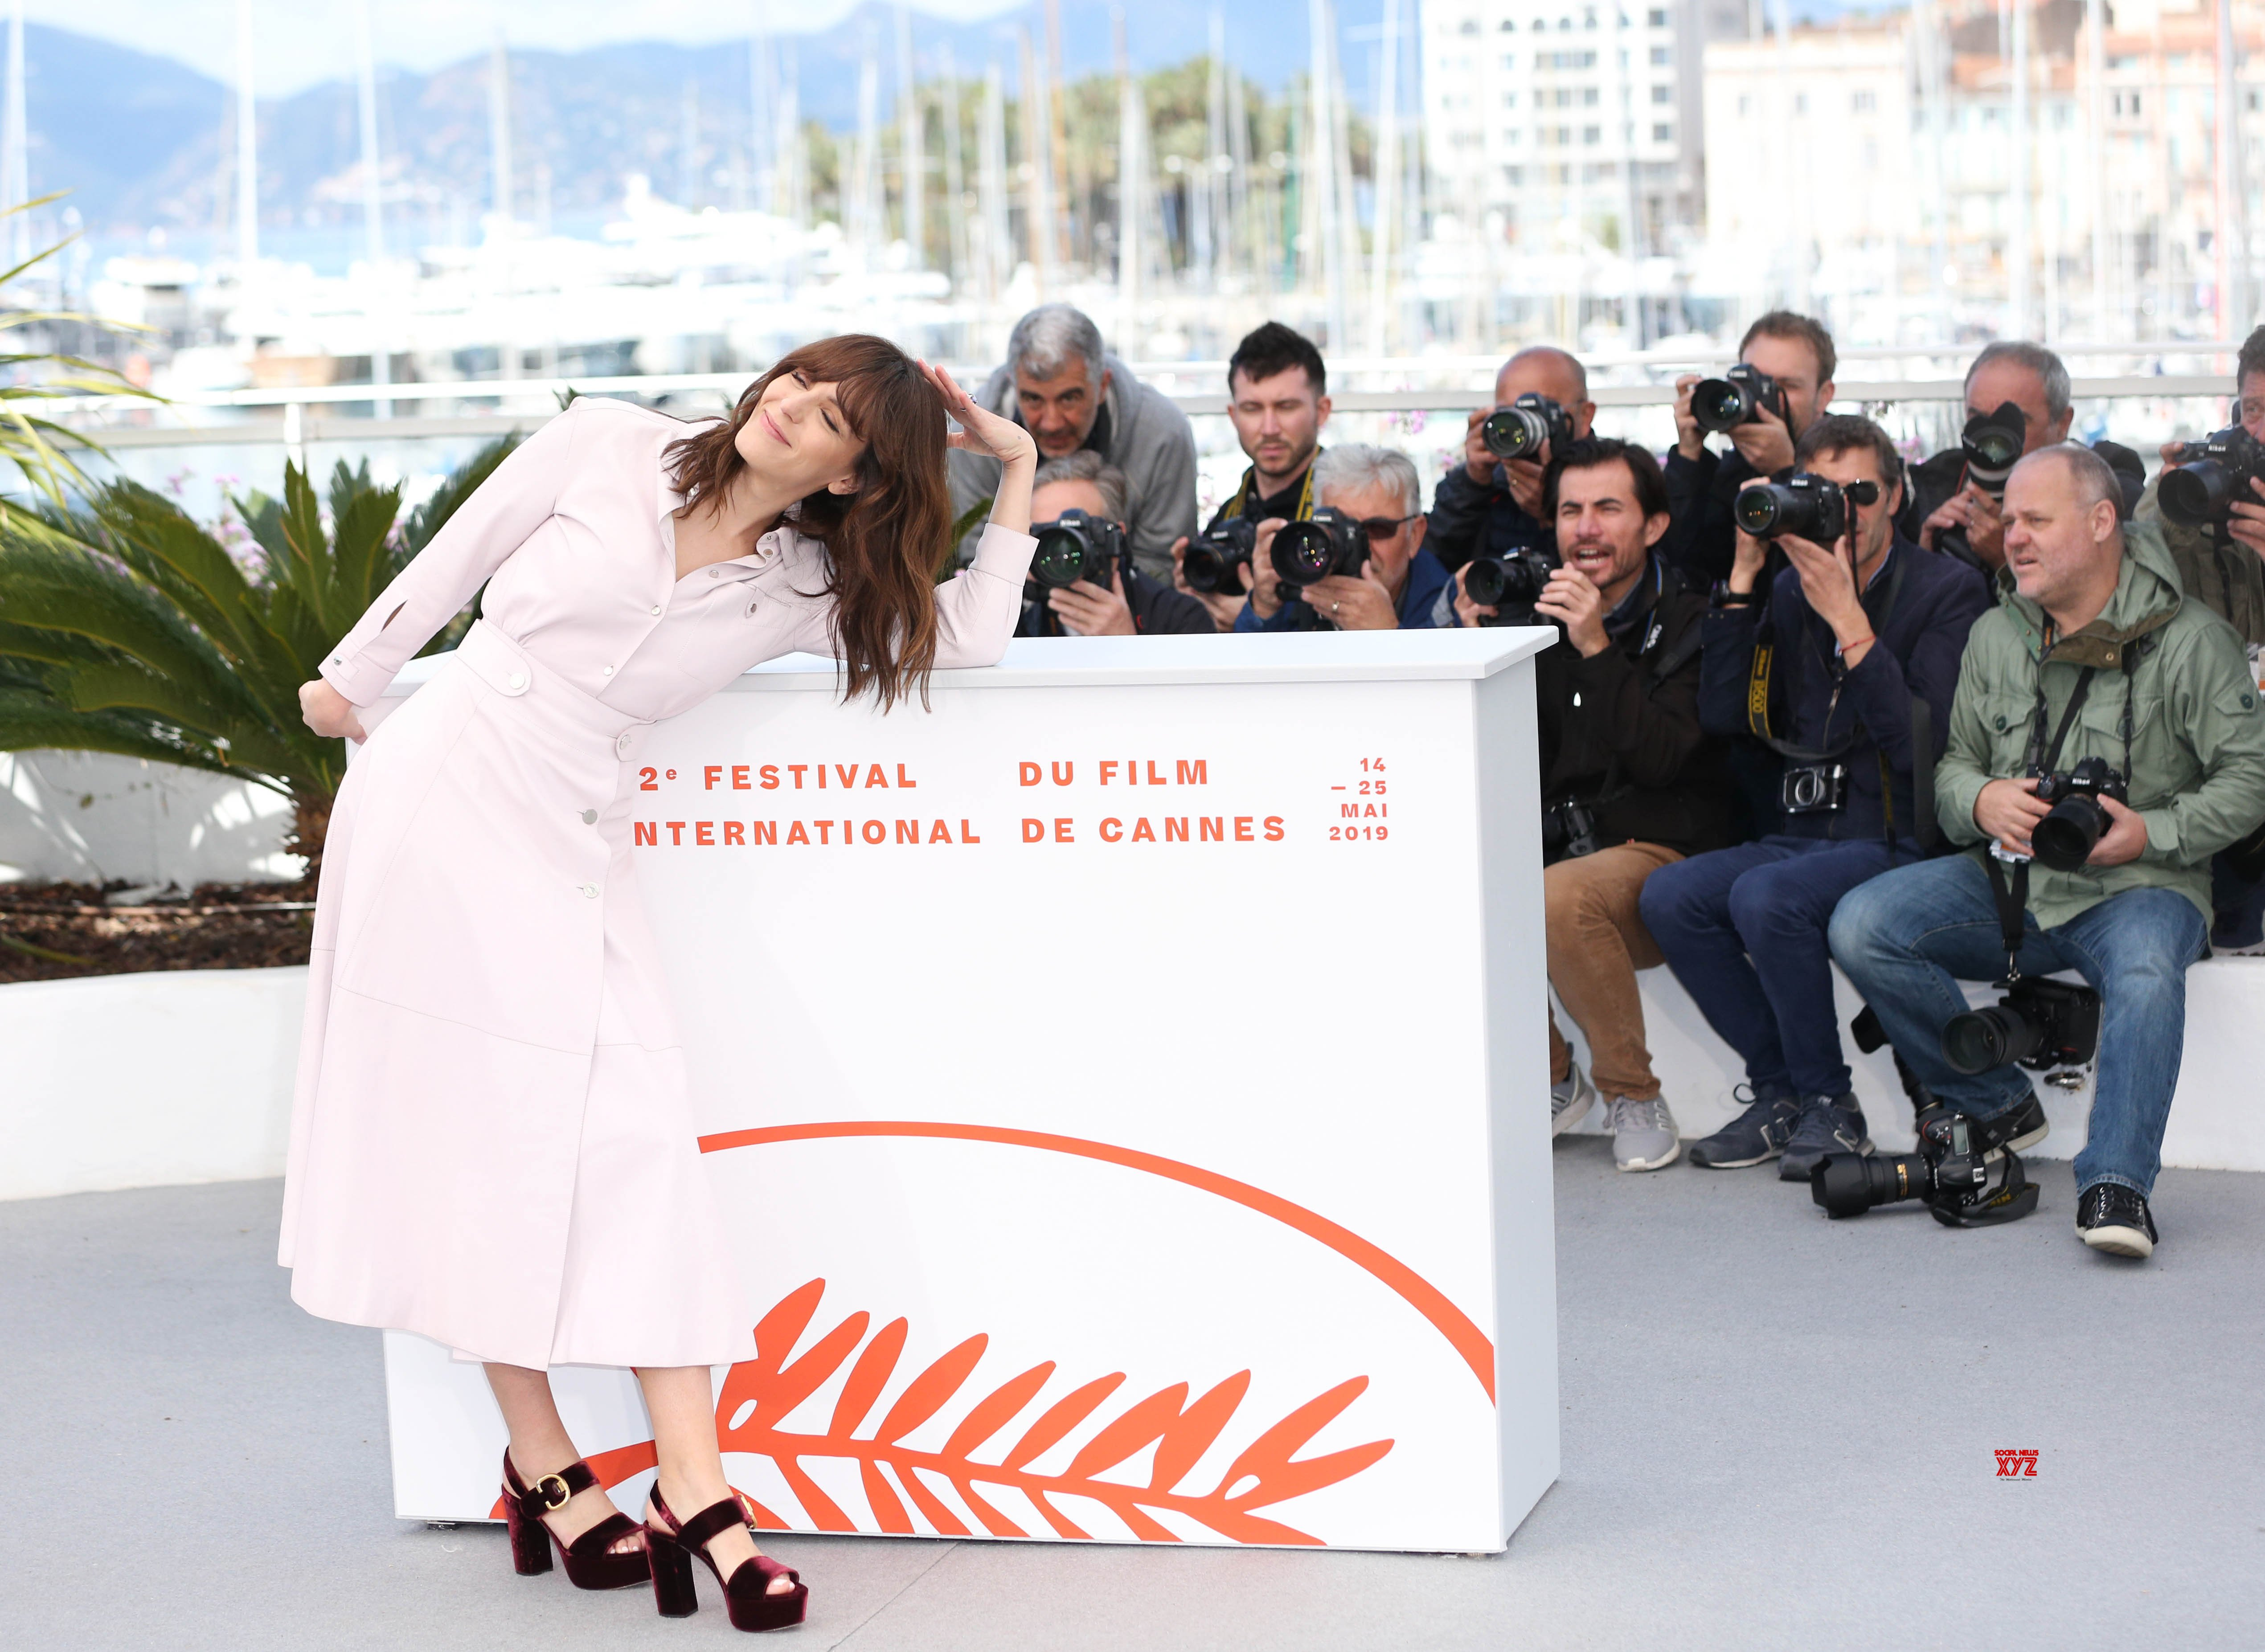 FRANCE - CANNES - FILM FESTIVAL - A BROTHER'S LOVE #Gallery